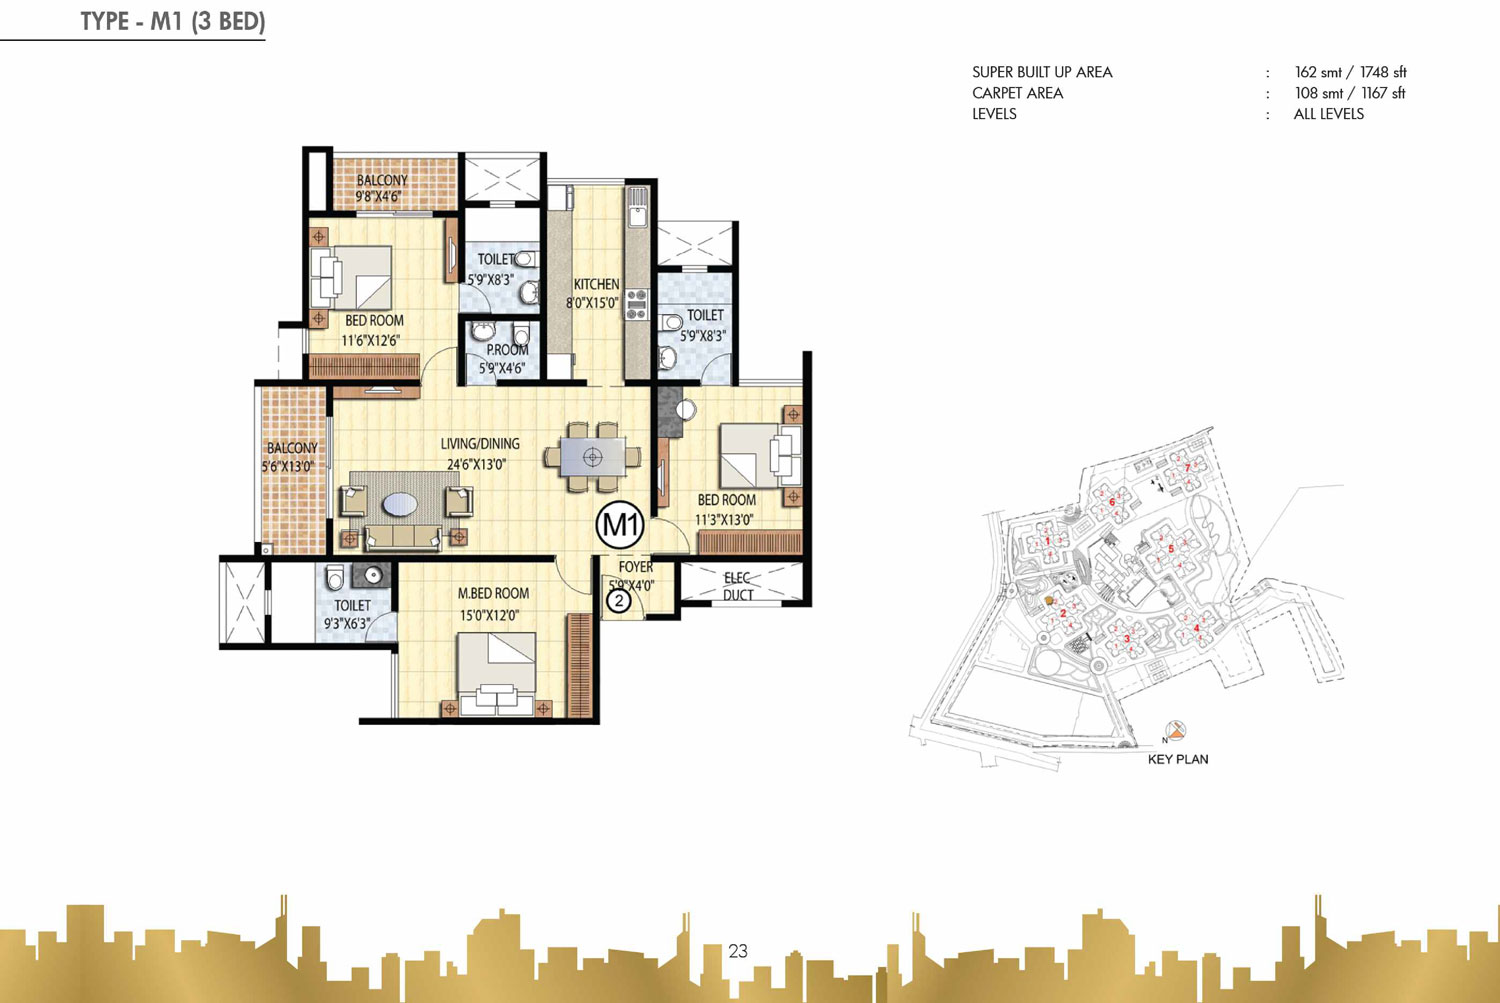 Type M1 - 3 Bed - 1748 Sq Ft